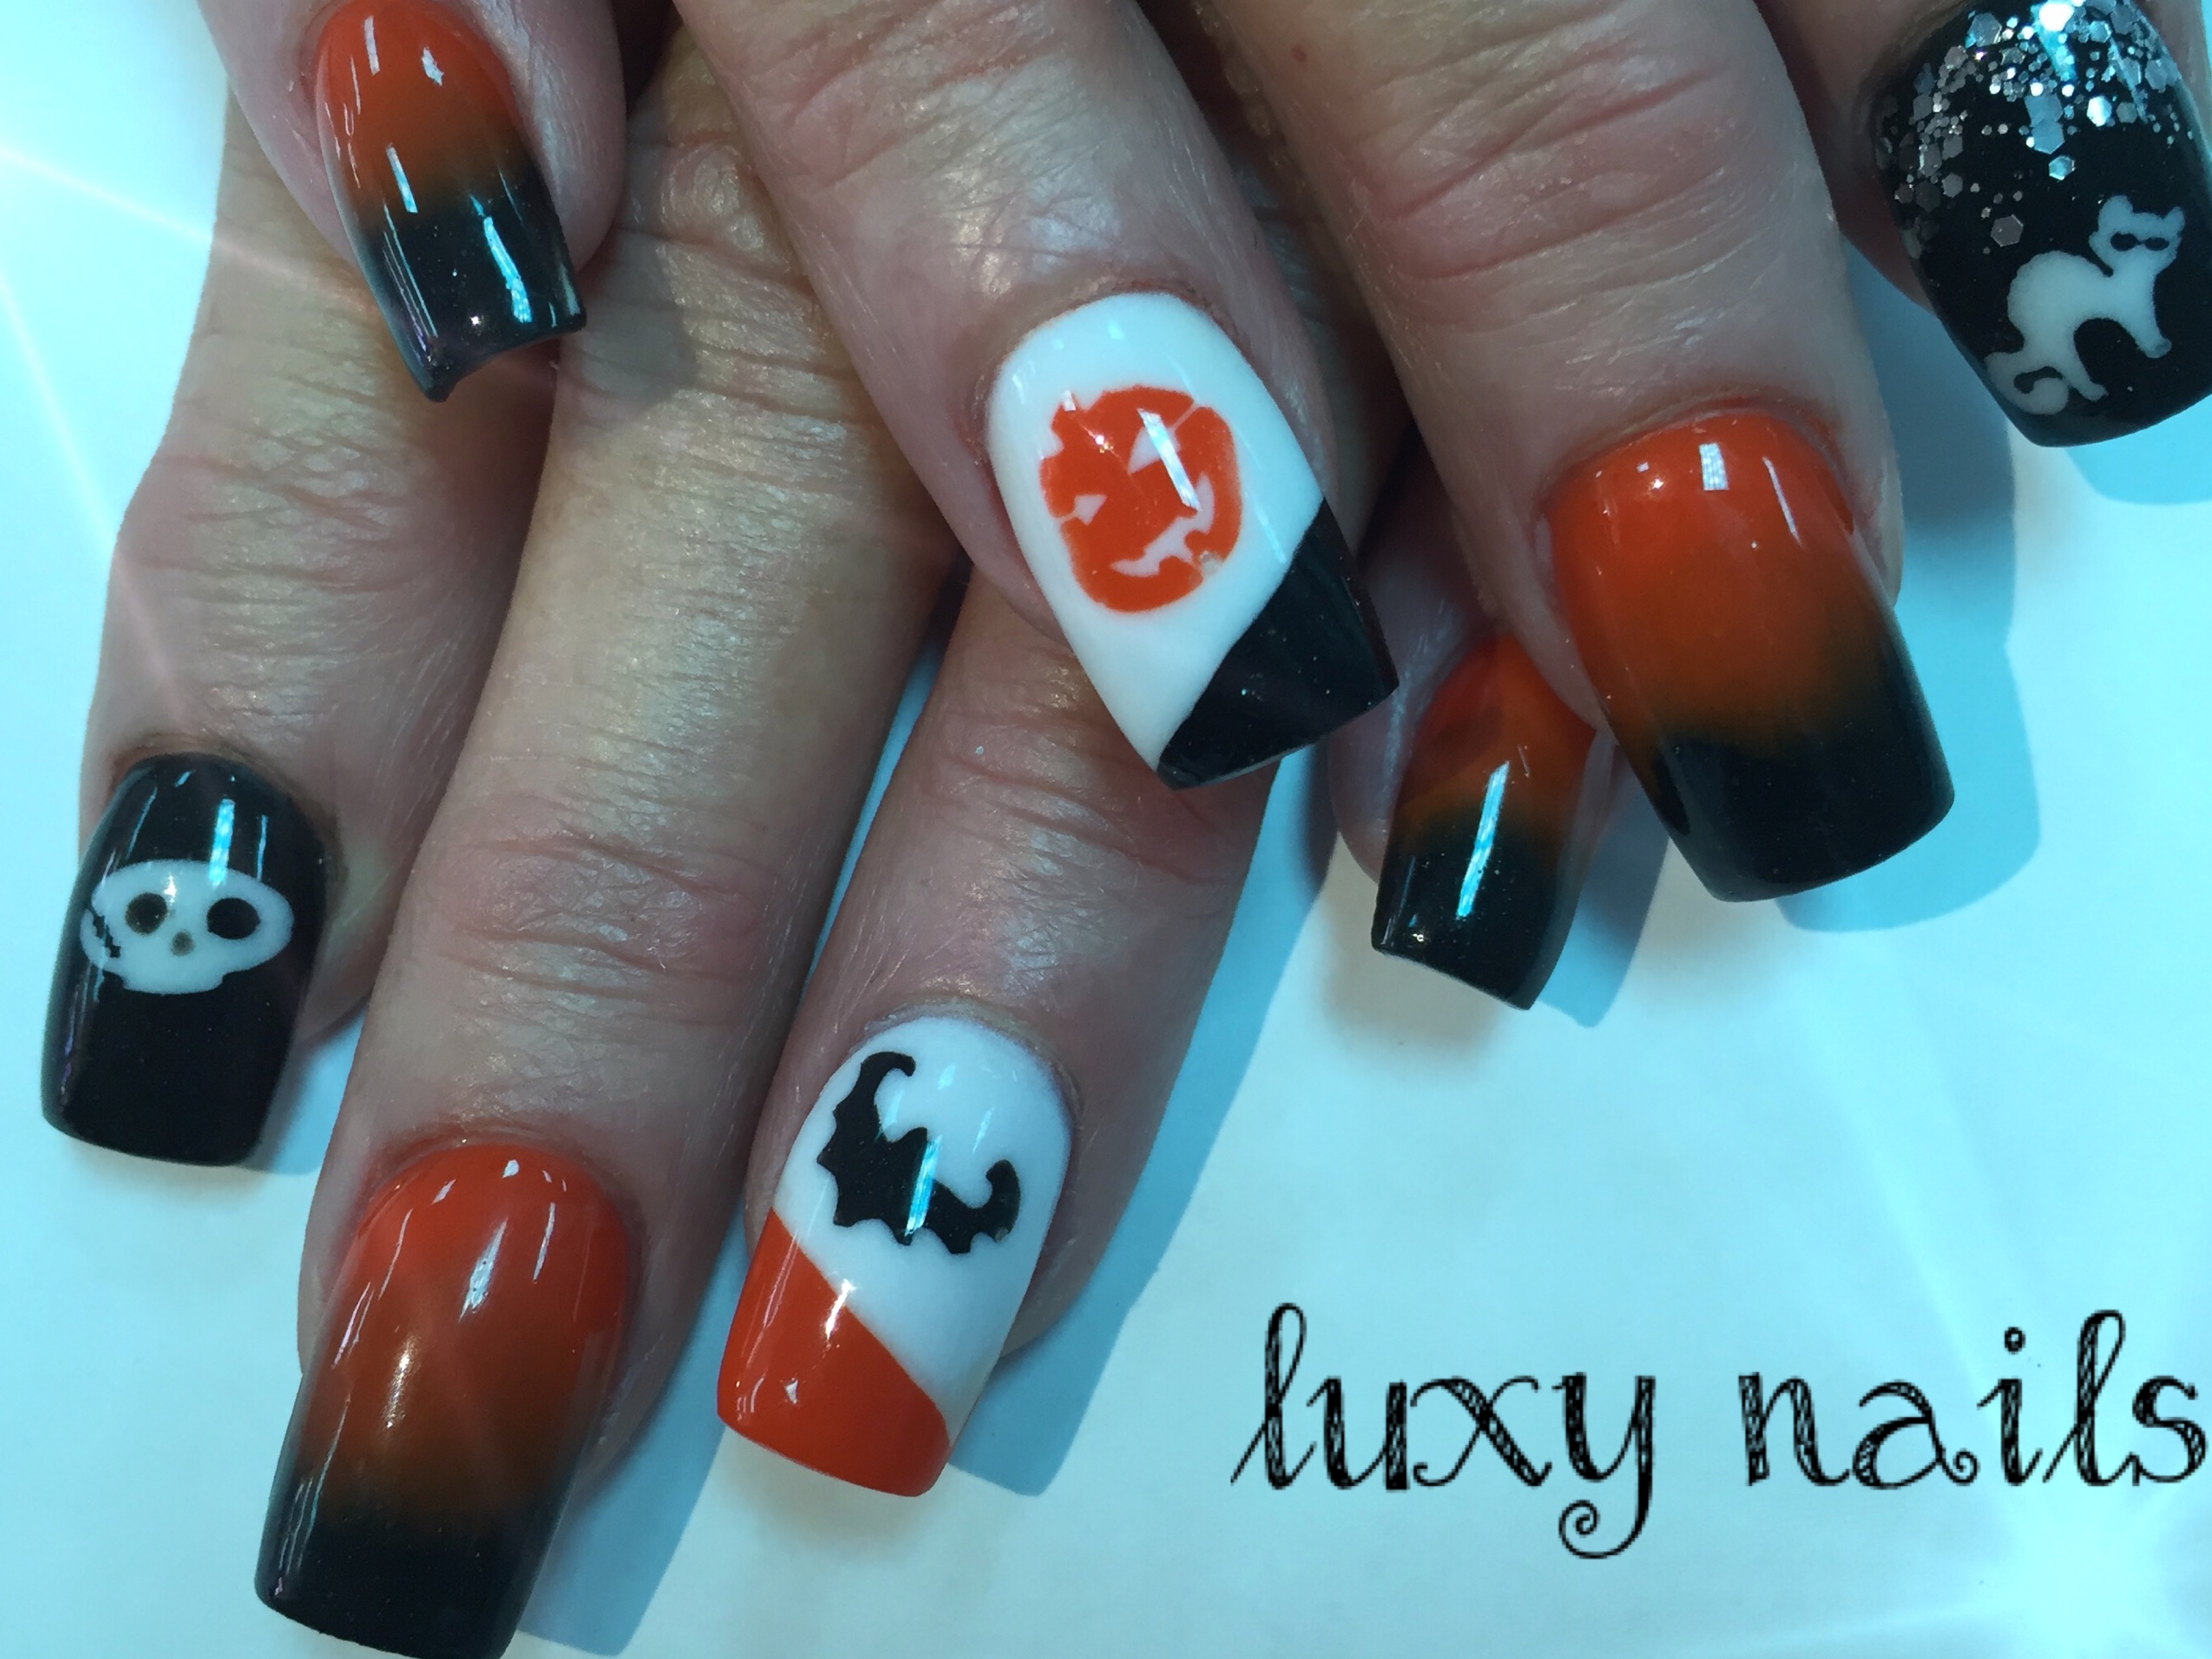 Luxy Nails 2574 County Road 220 Ste 2, Middleburg, FL 32068 - YP.com